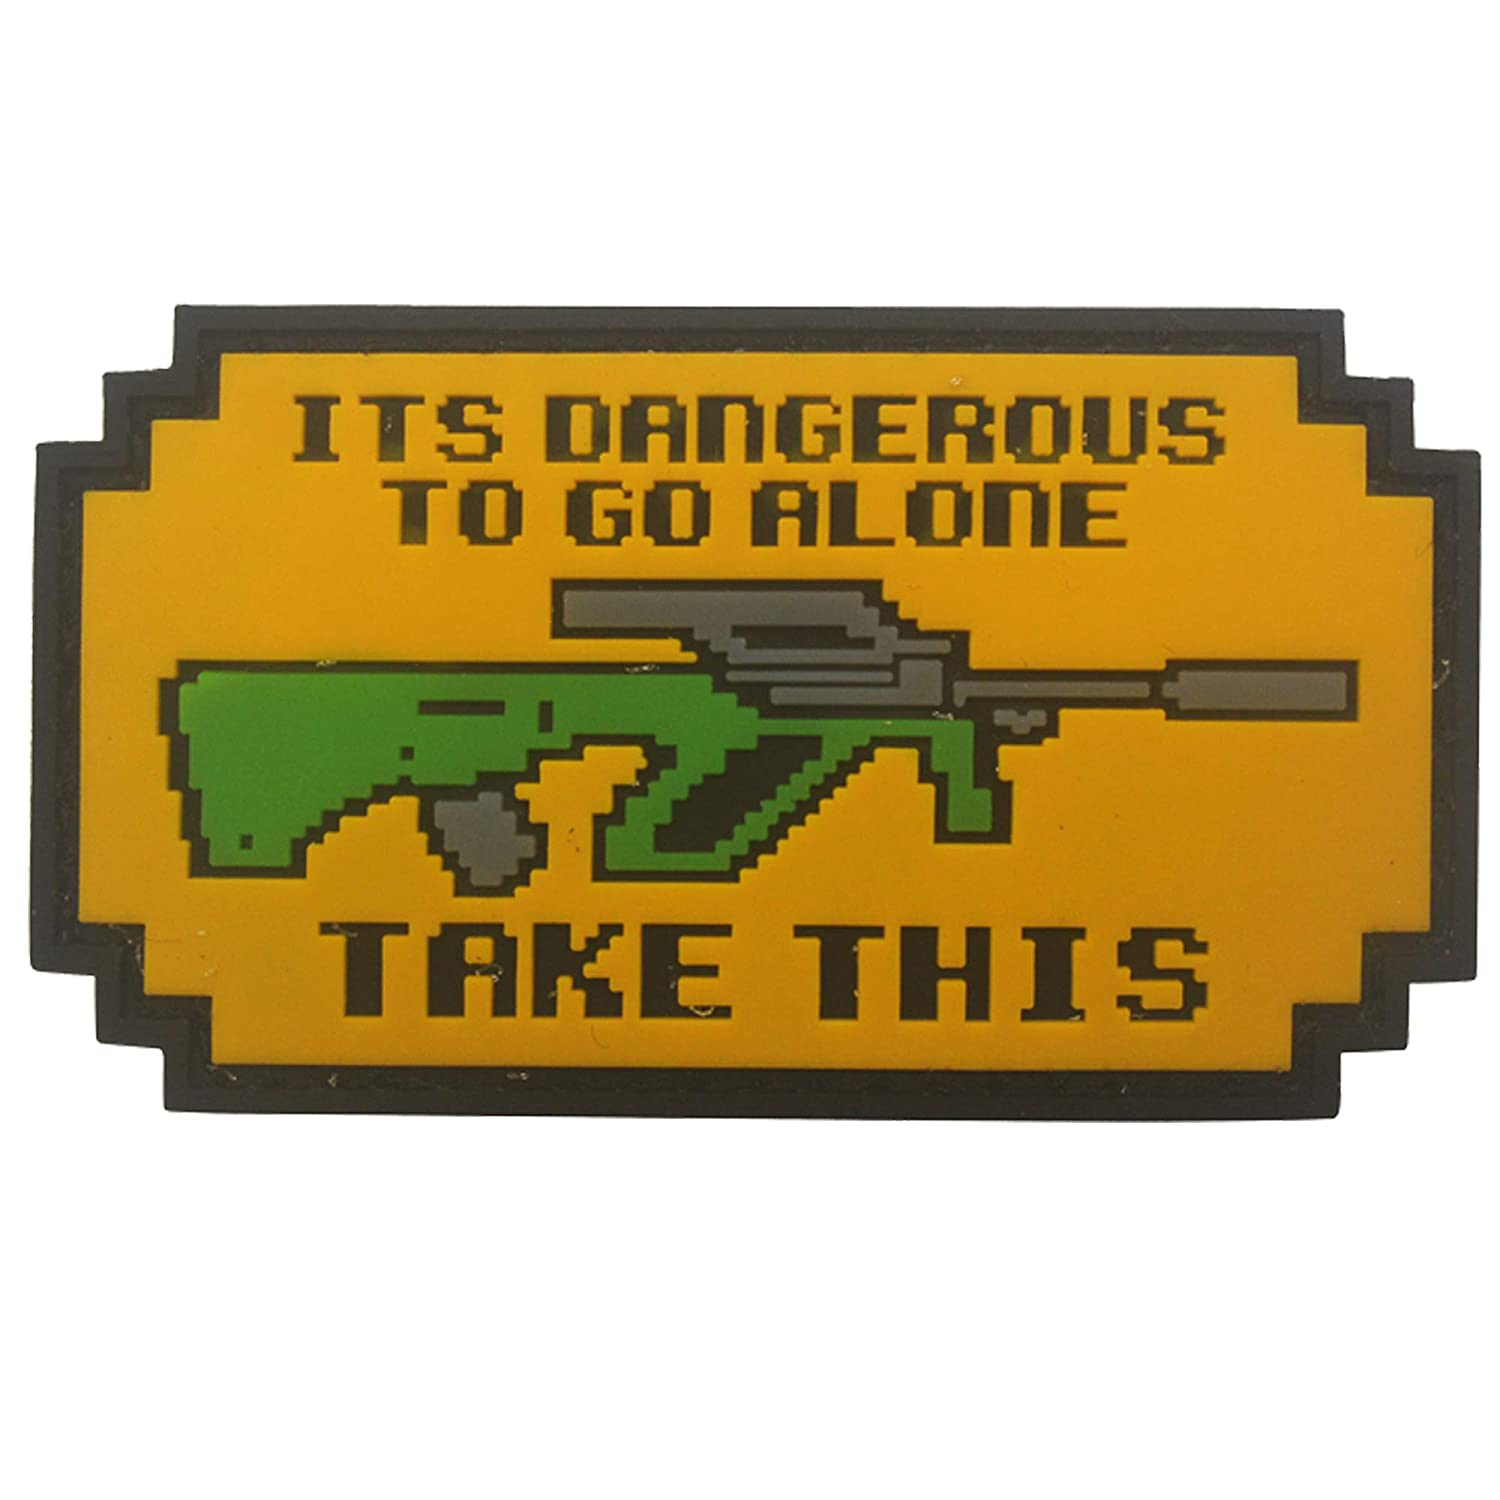 Jeep Patches 5.8x4.3 Cm Iron on Patch Embroidered Patch This Appliques Are for